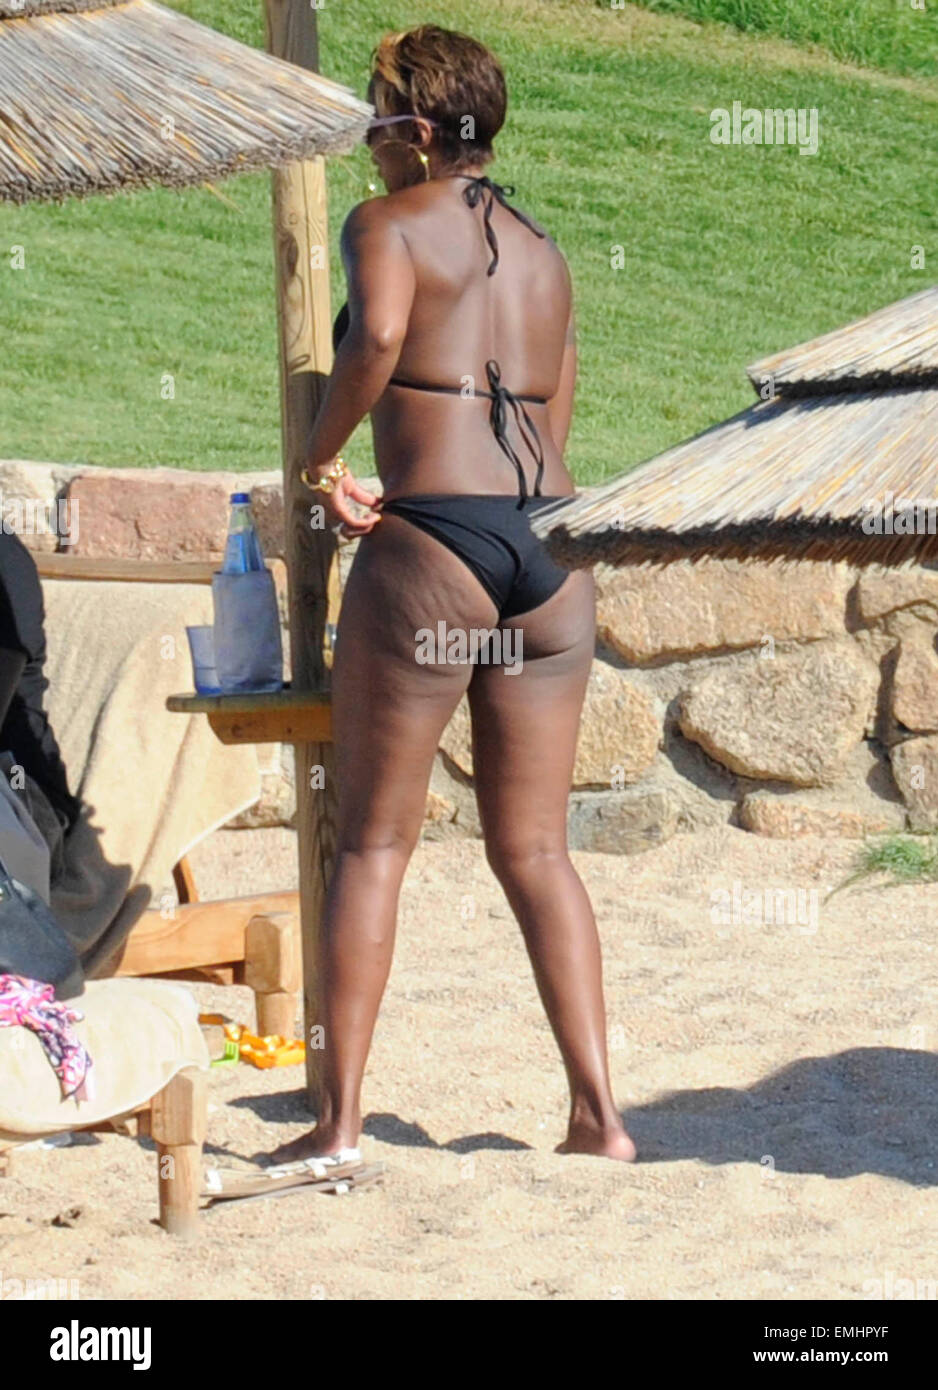 Does Mary j blige nude bikini knows it